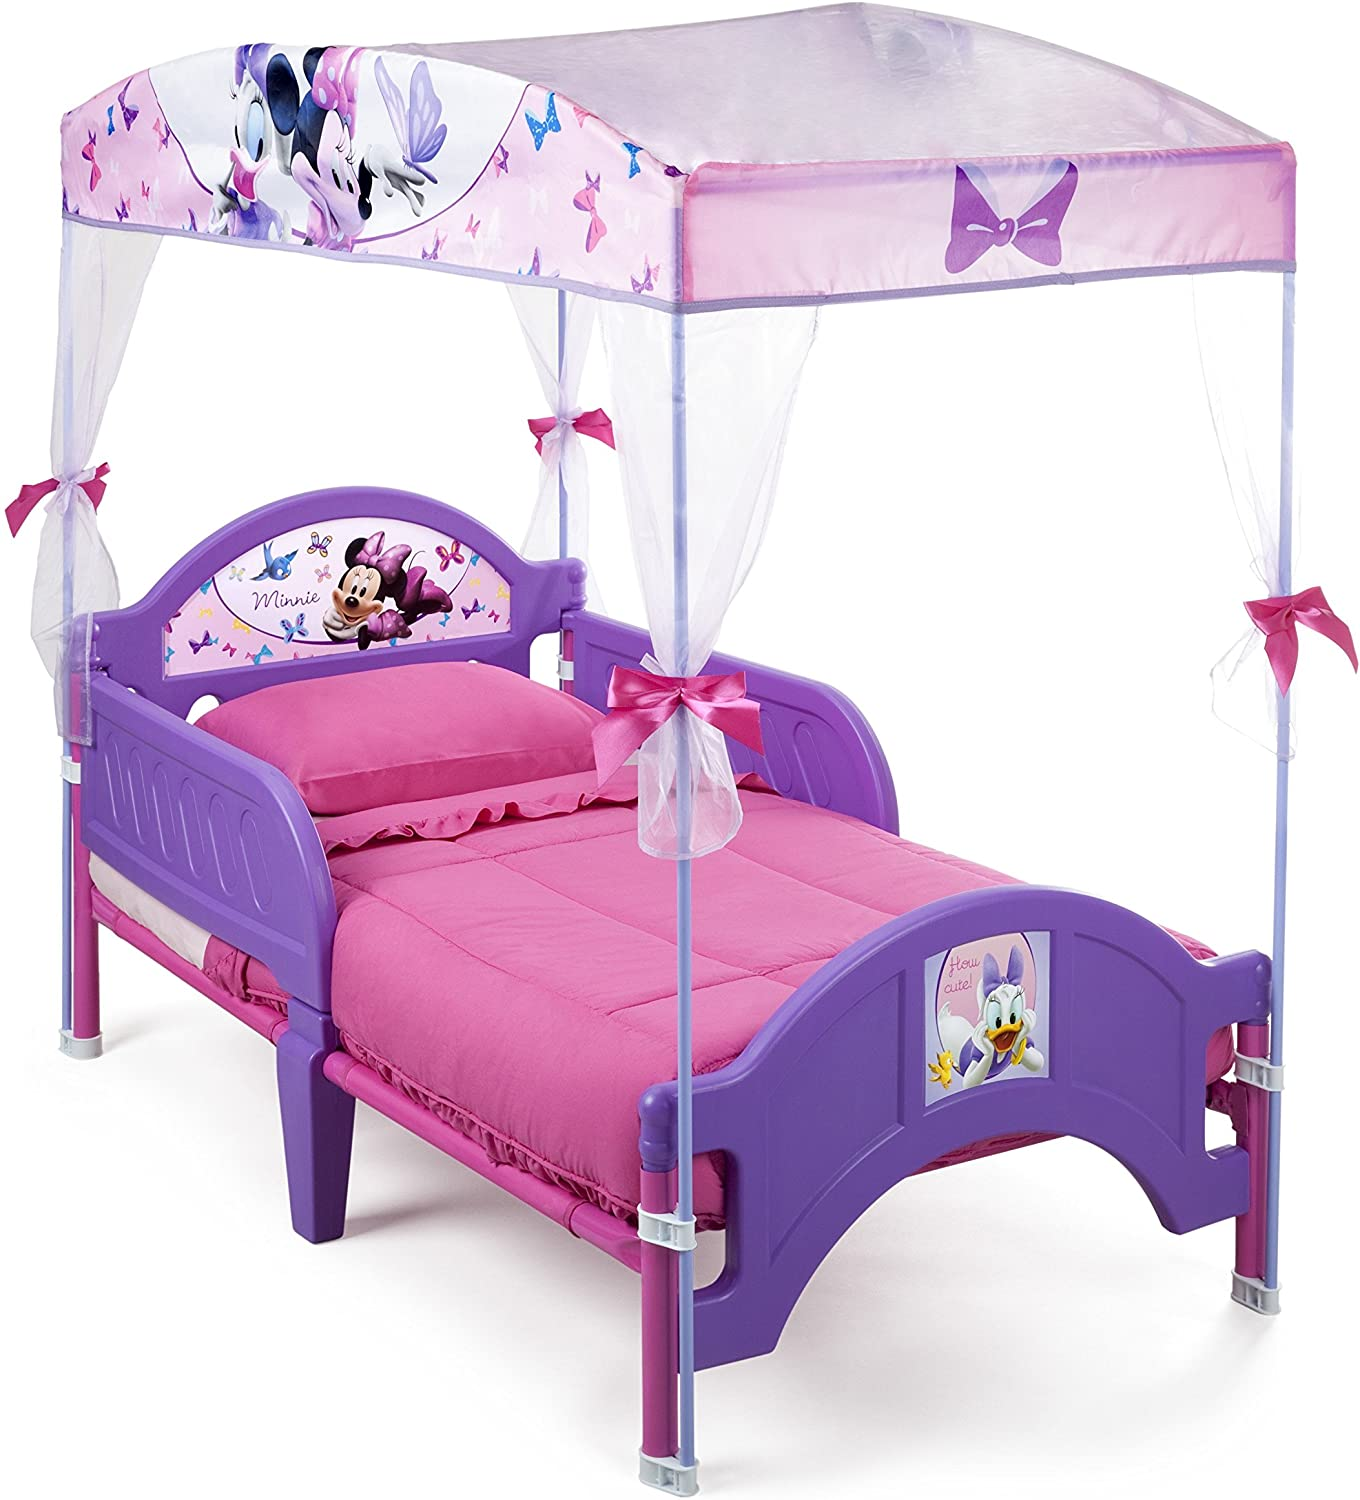 Delta Children s Products Minnie Mouse Canopy Toddler Bed